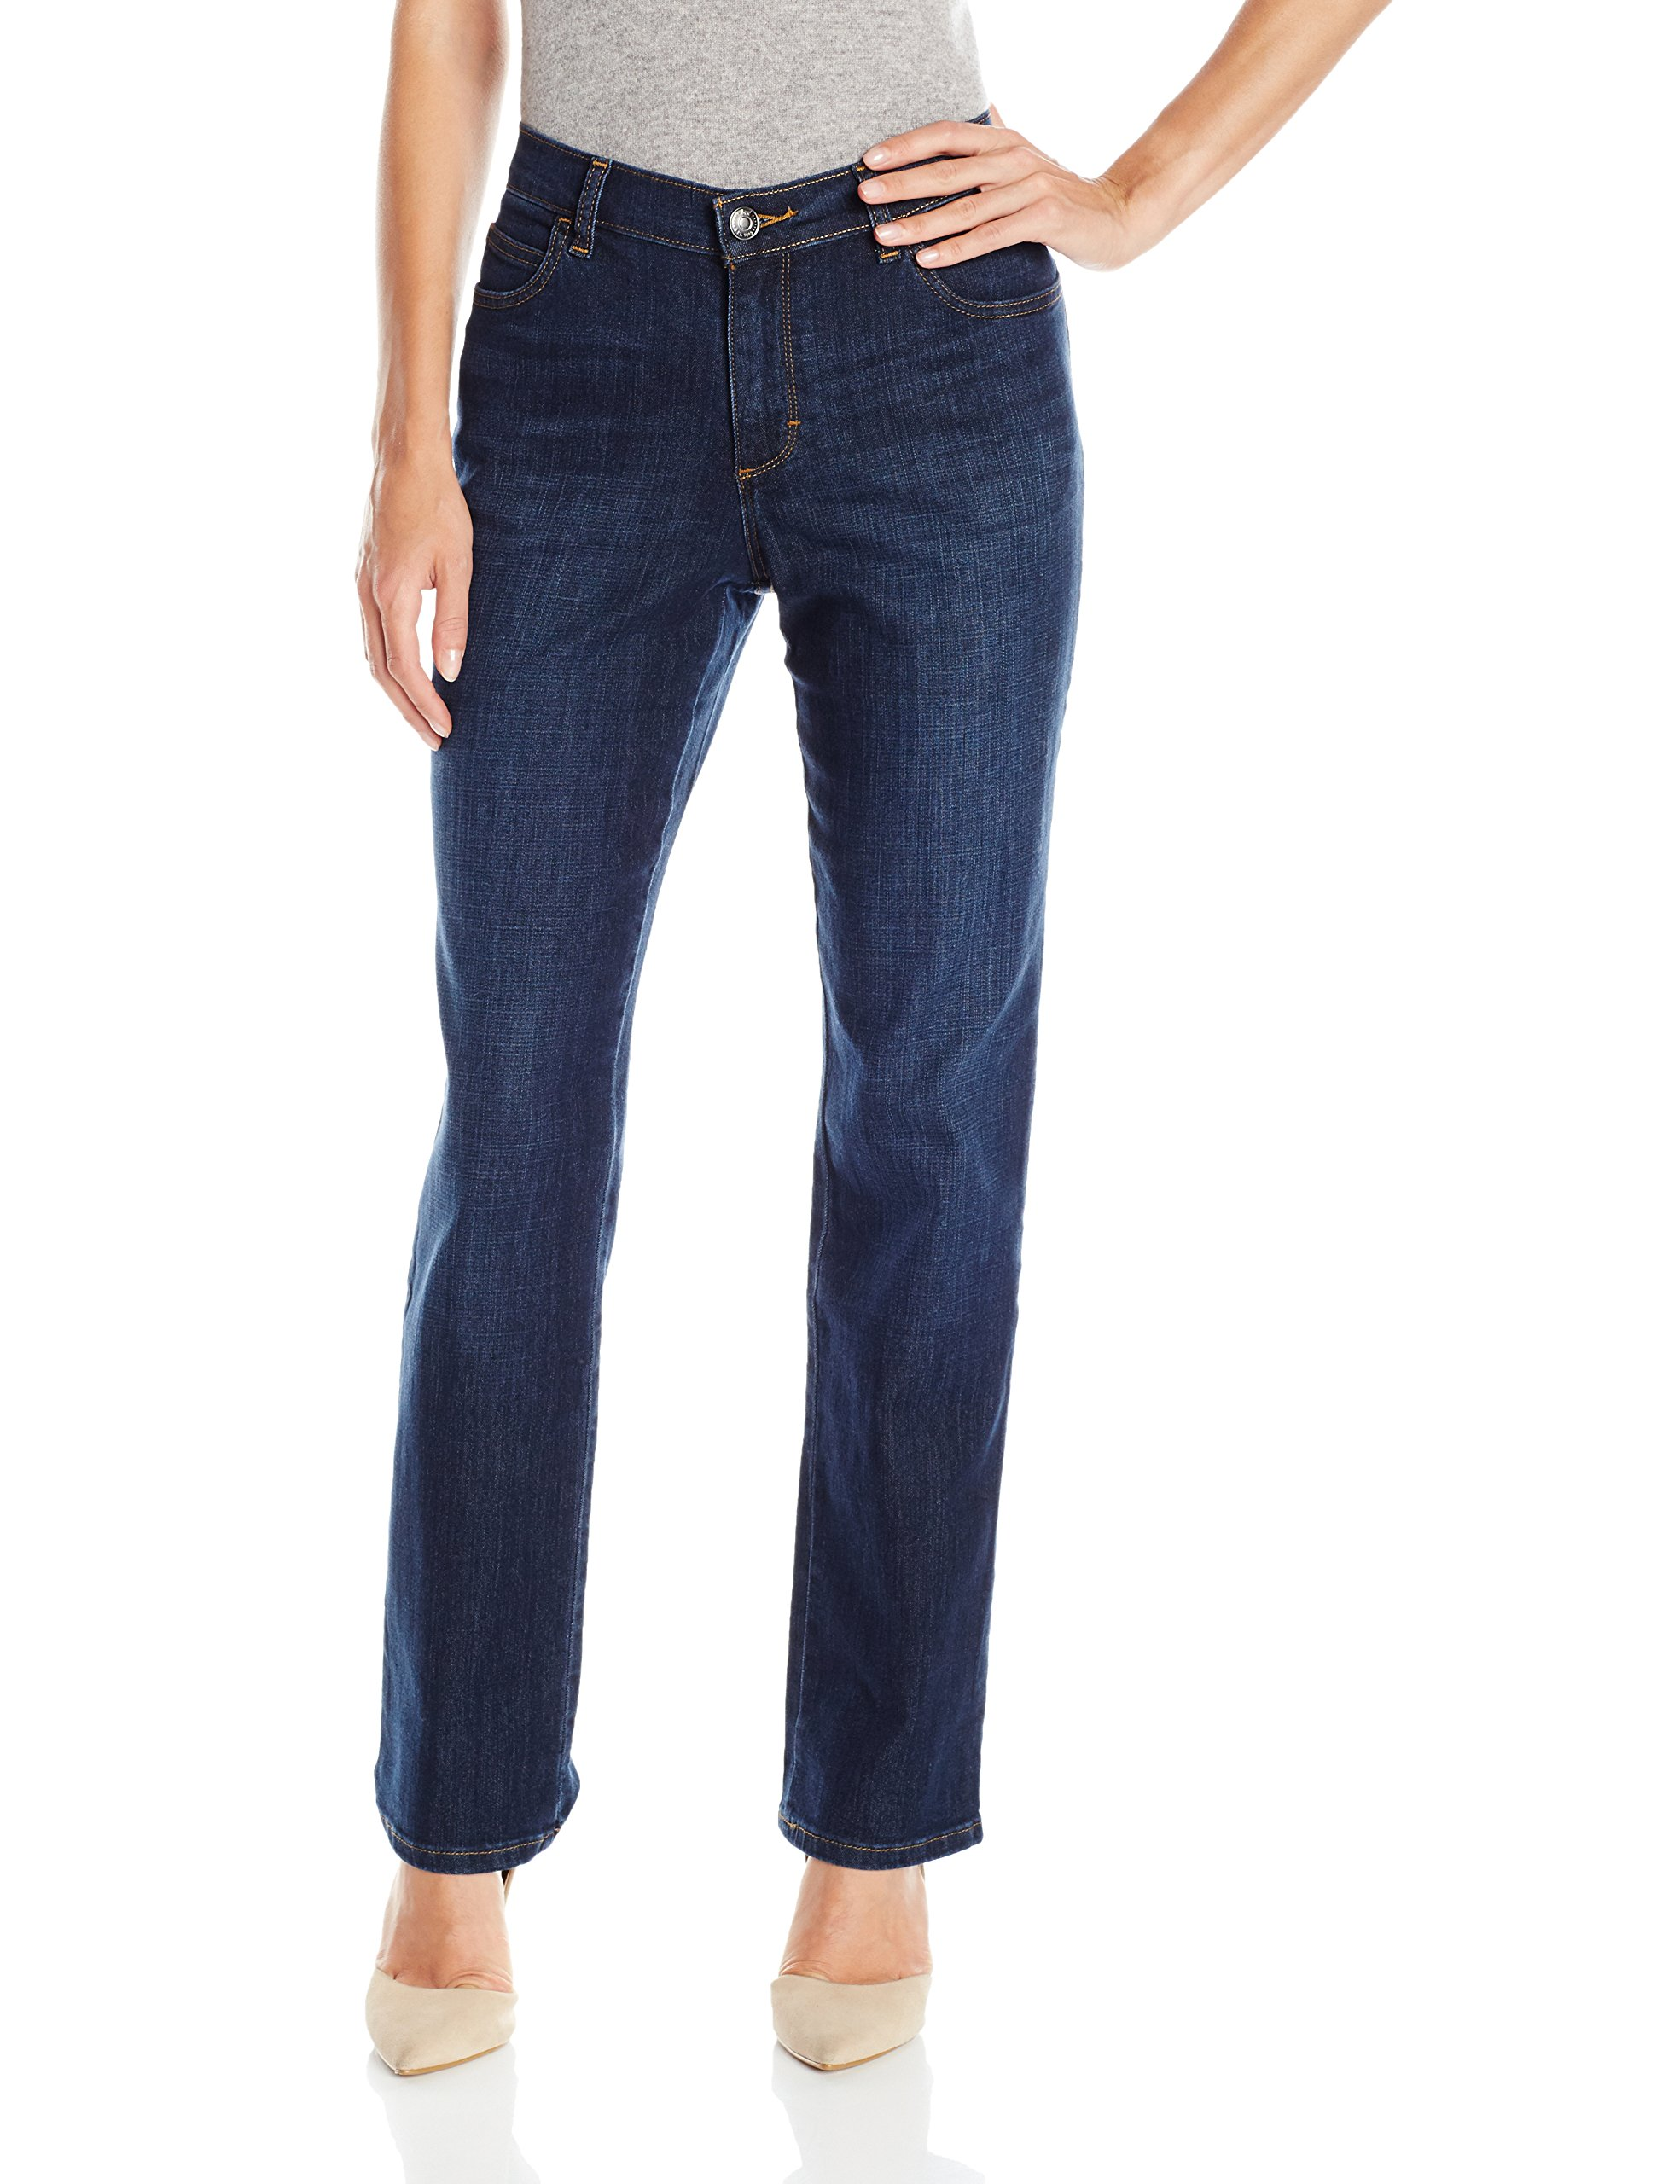 LEE Women's Relaxed Fit Straight Leg Jean, Verona, 16 by LEE (Image #1)